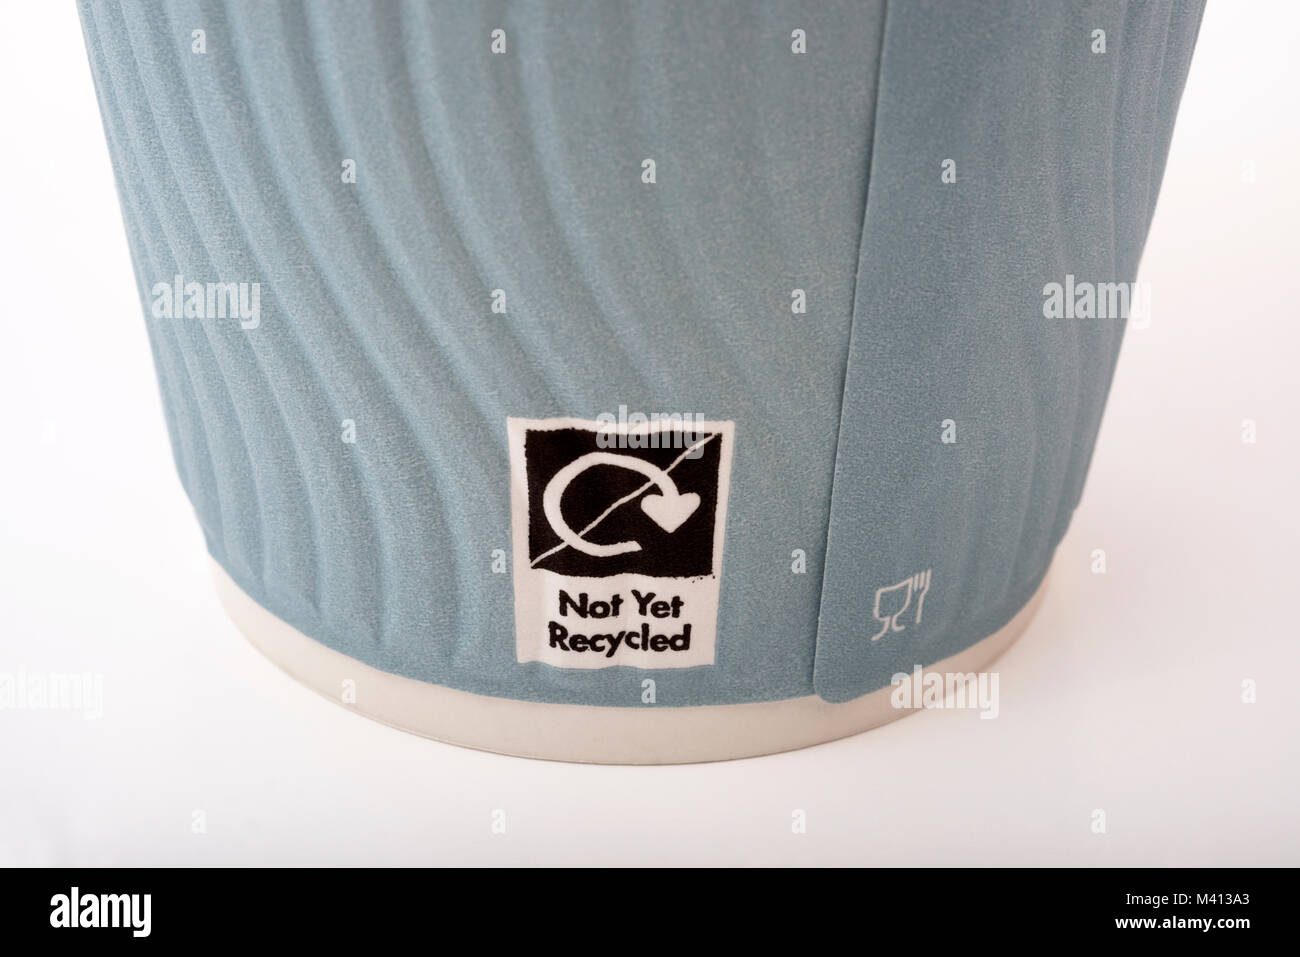 Non recyclable coffee cup - Stock Image